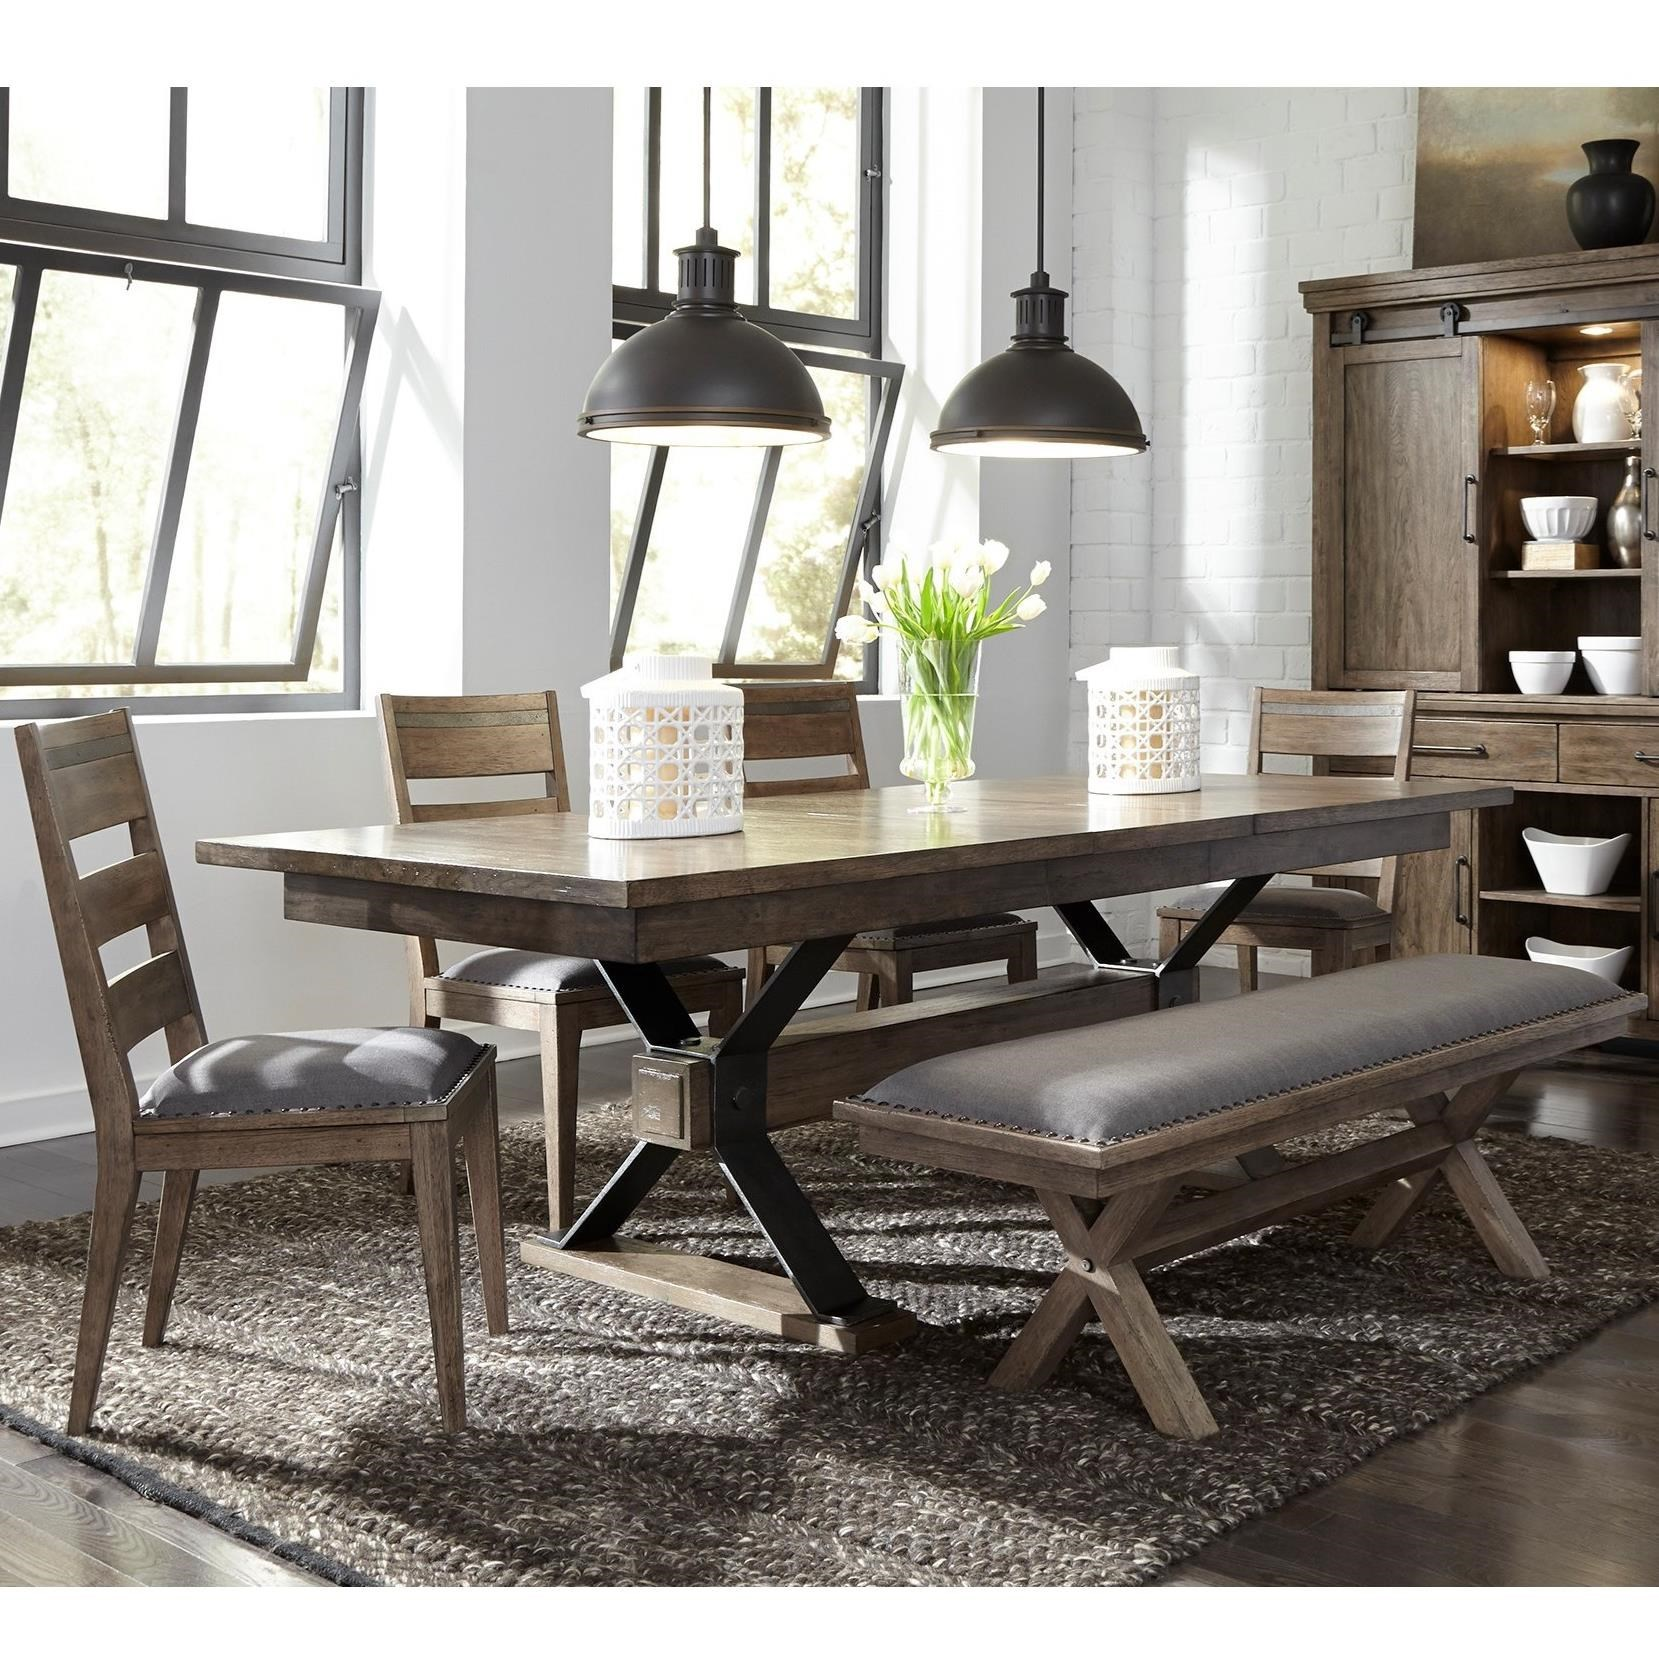 Bon Liberty Furniture Sonoma Road6 Piece Table And Chair Set